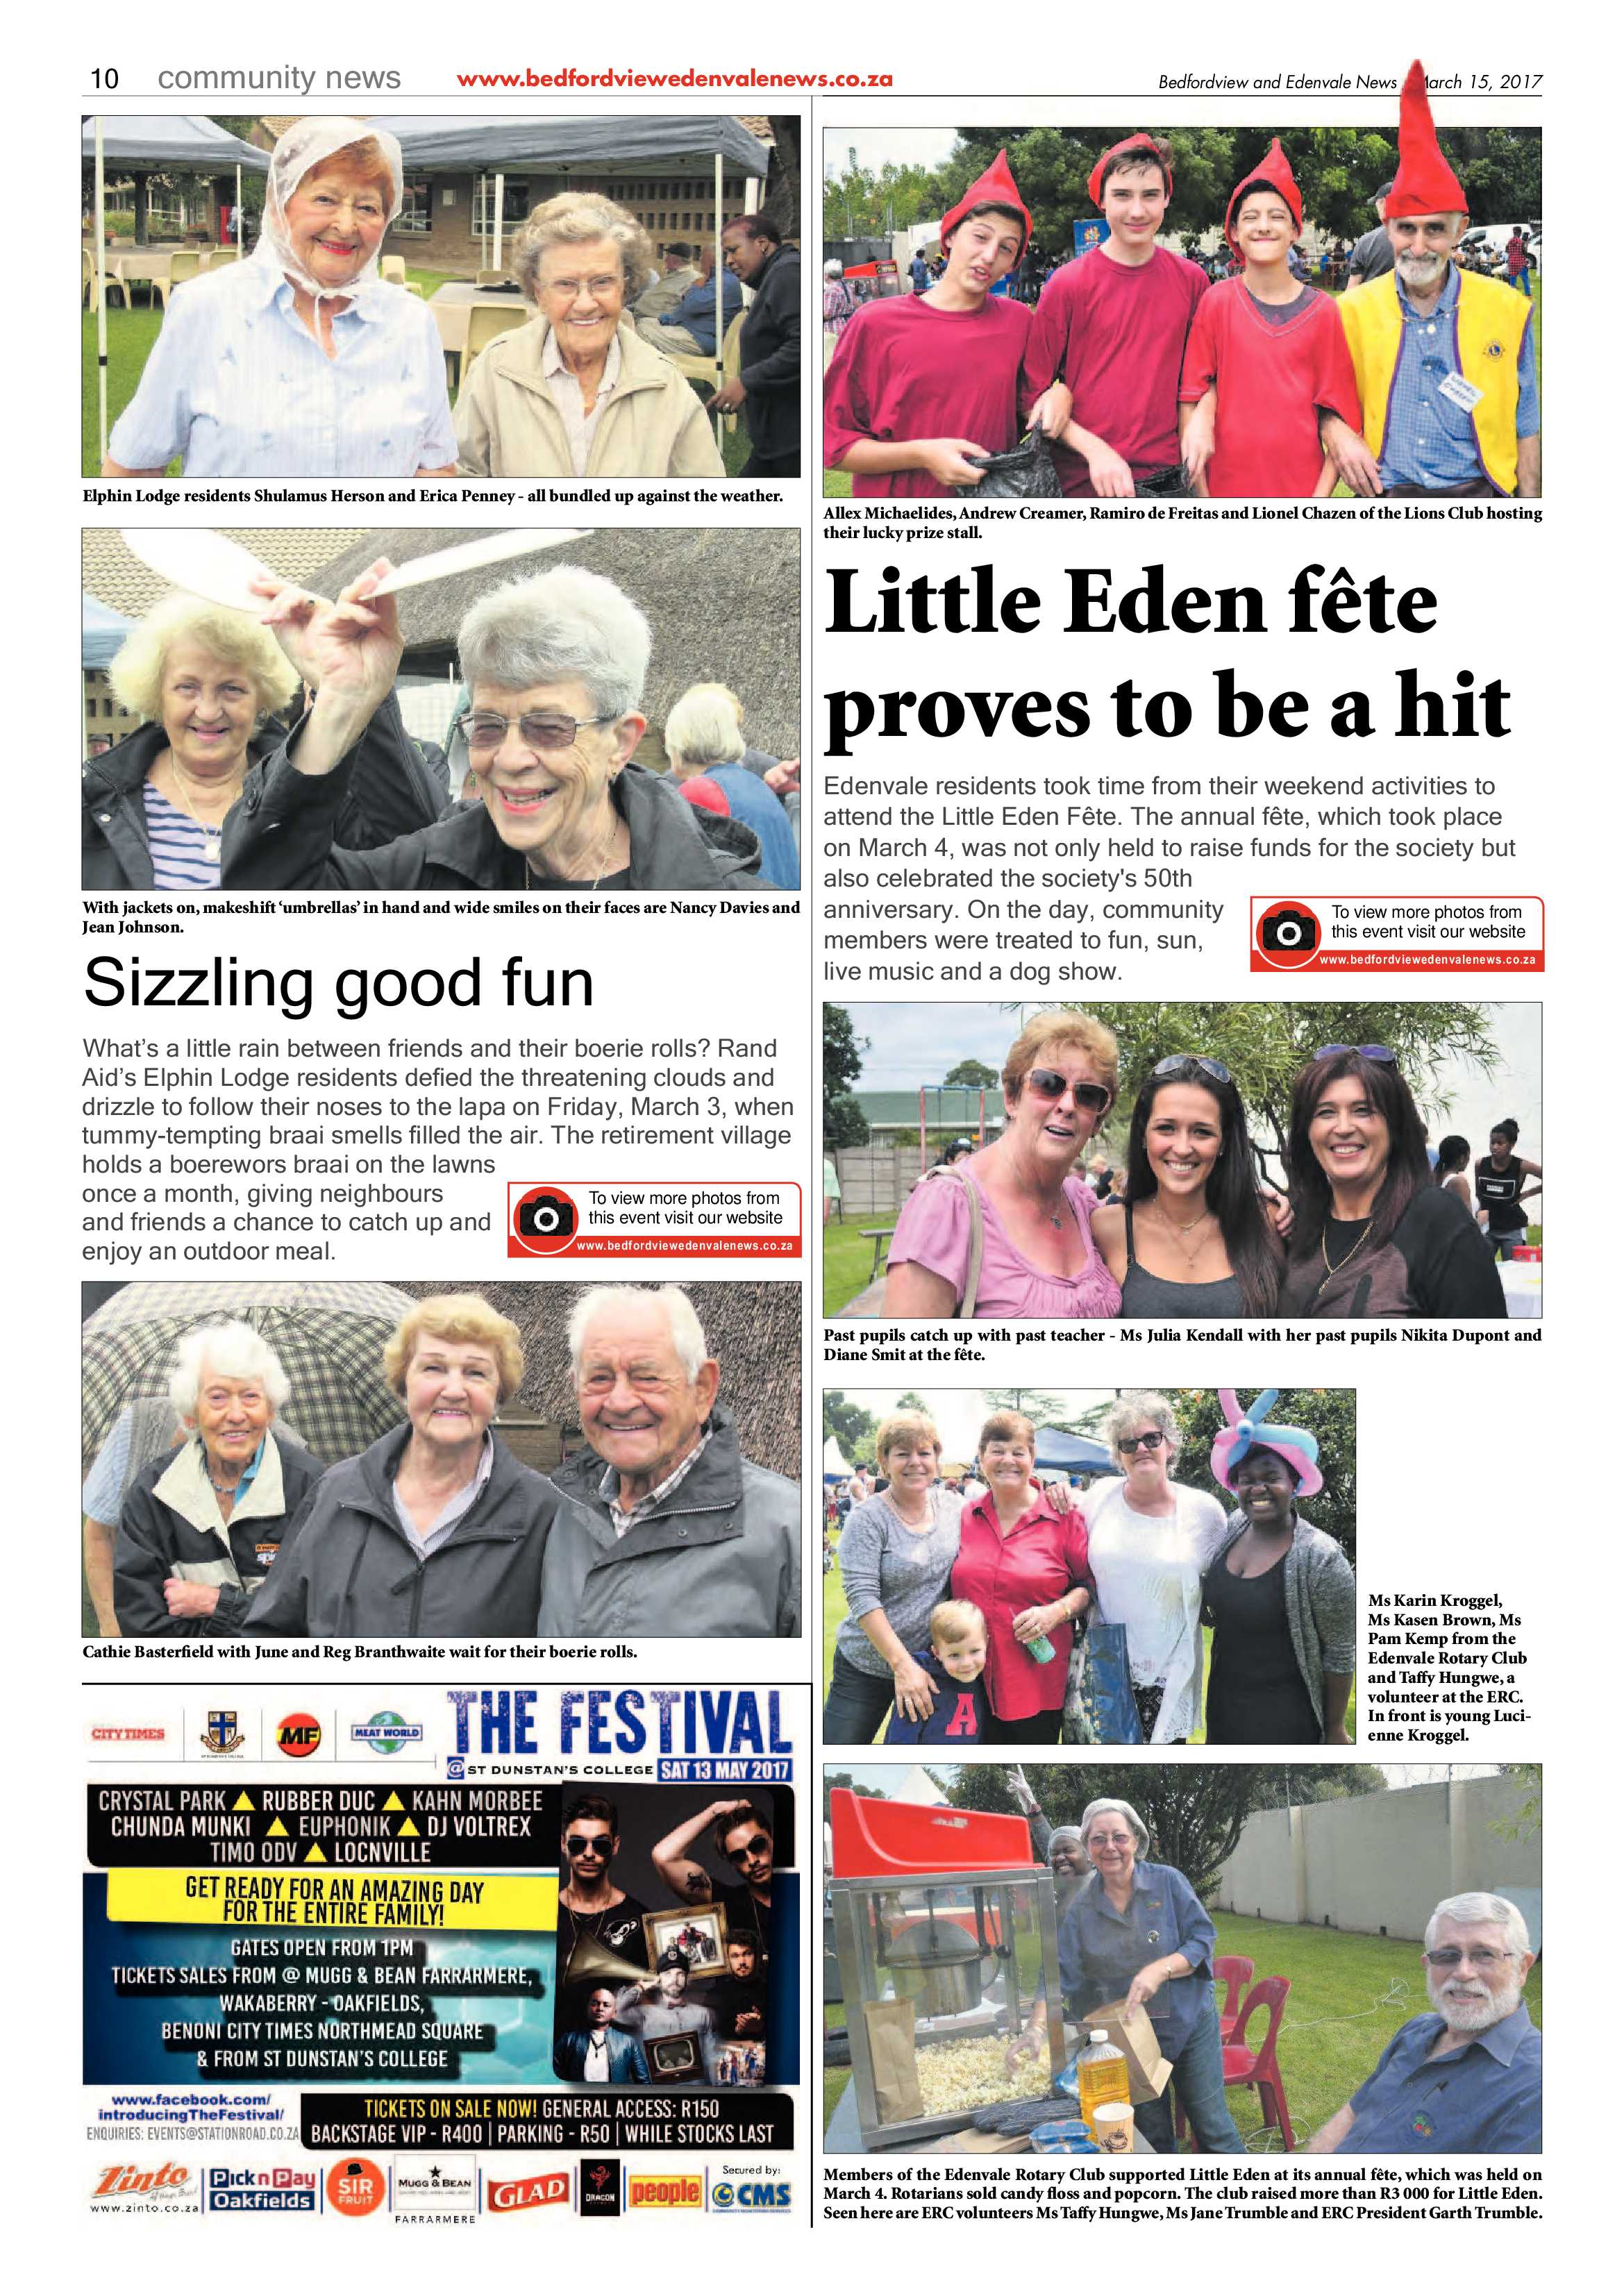 bedfordview-edenvale-news-15-march-2017-epapers-page-10